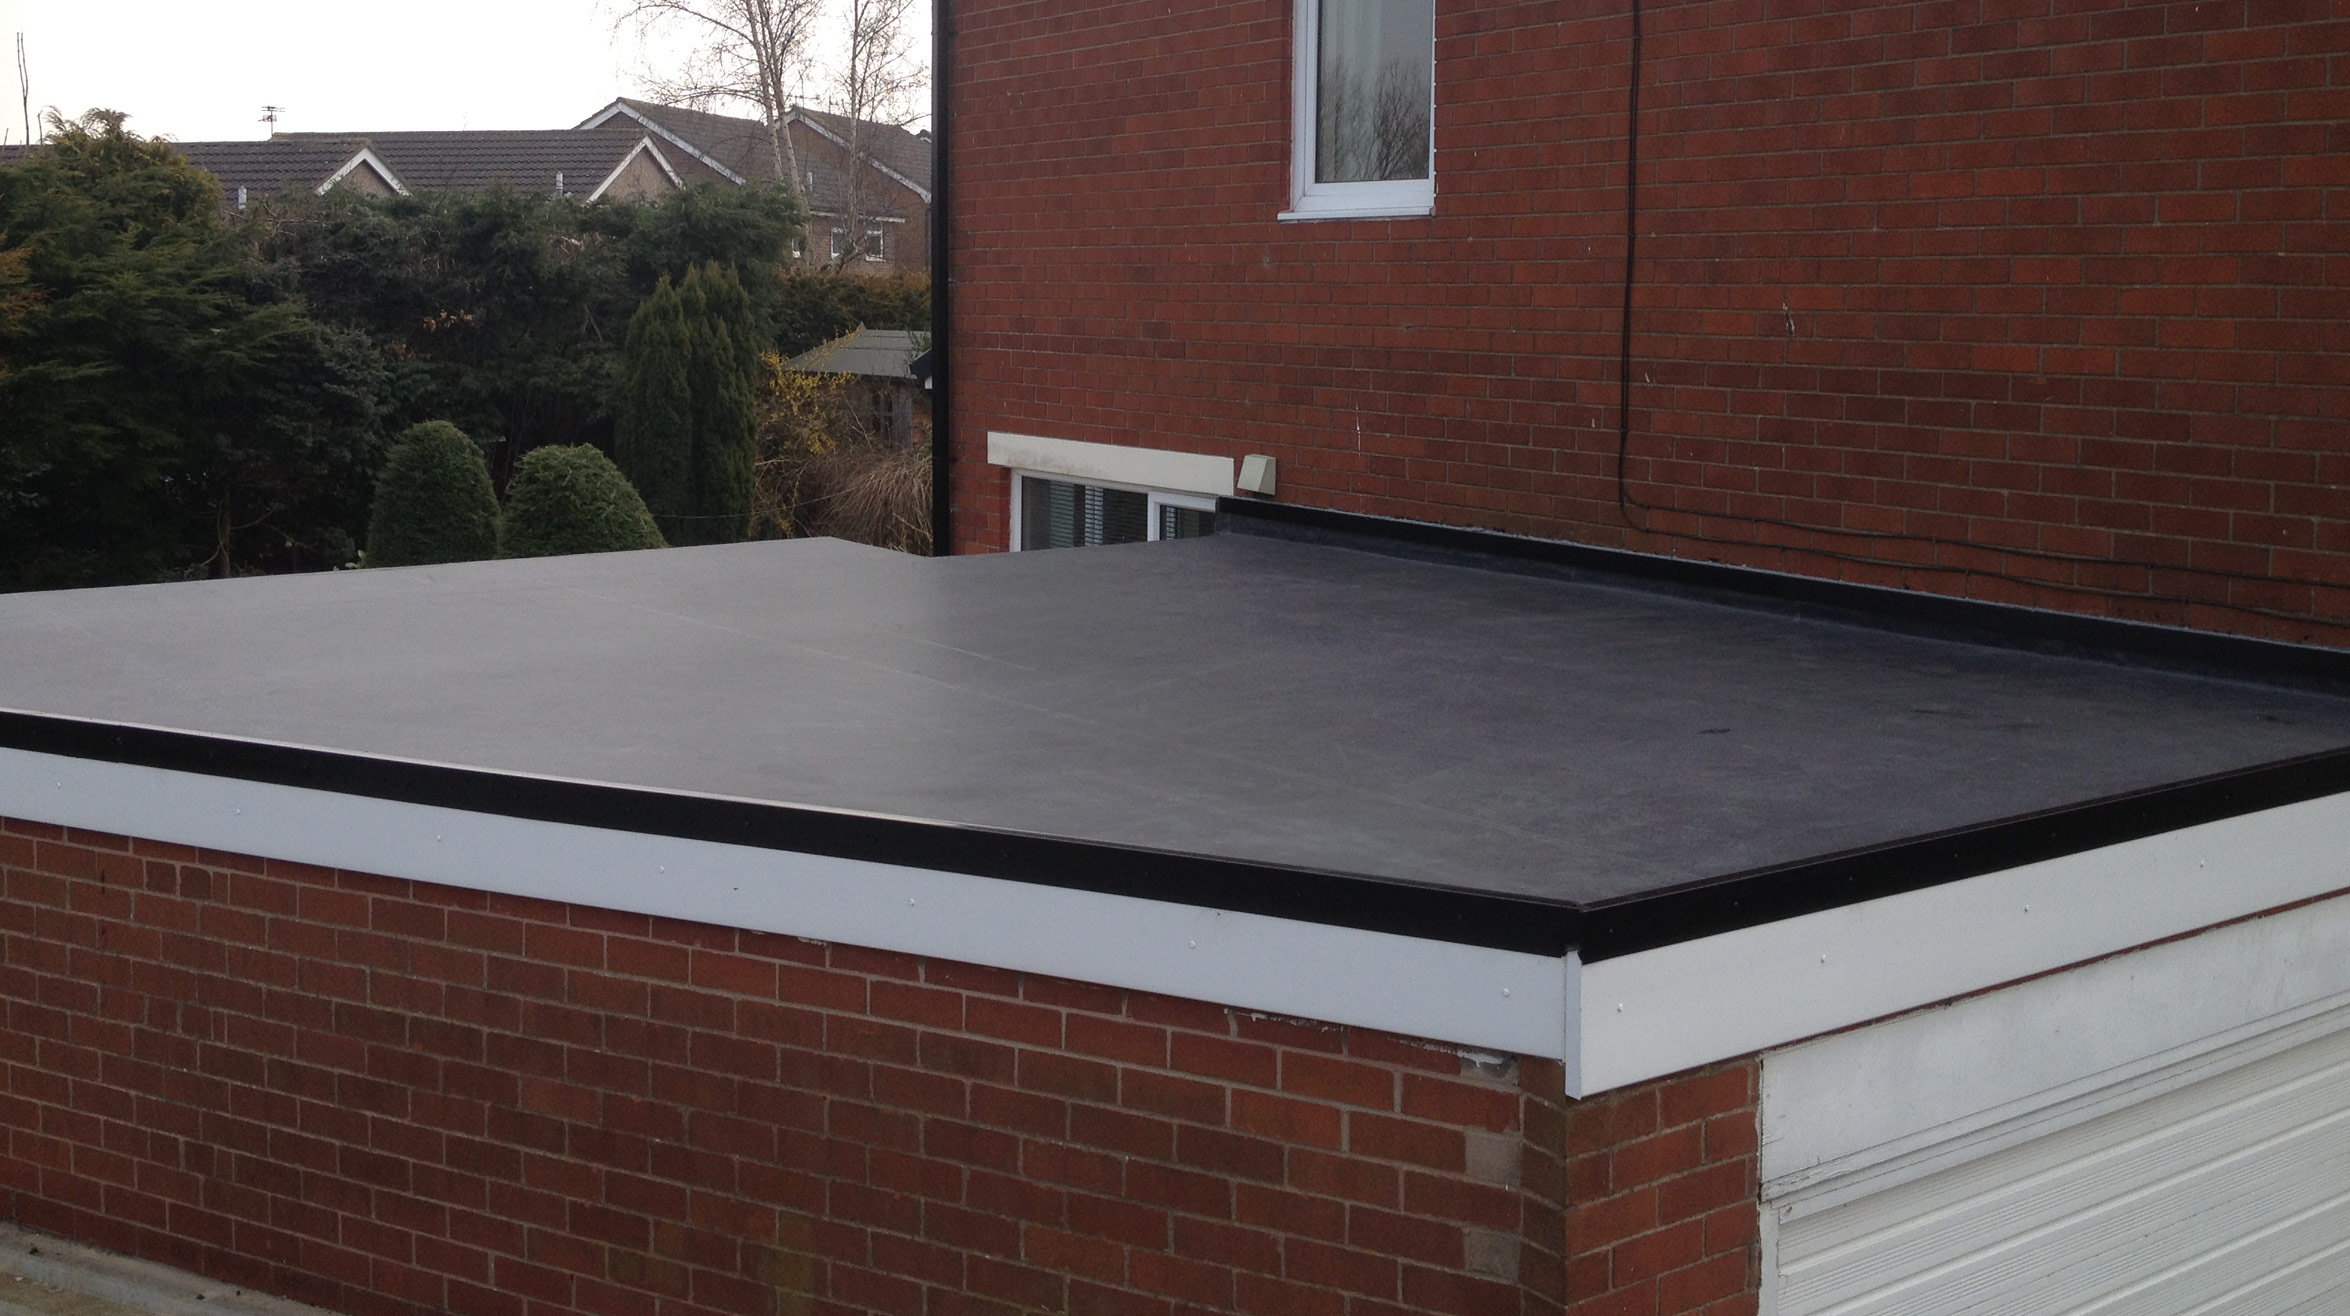 EPDM Rubber Roofing provides long-term durability and increased performance.